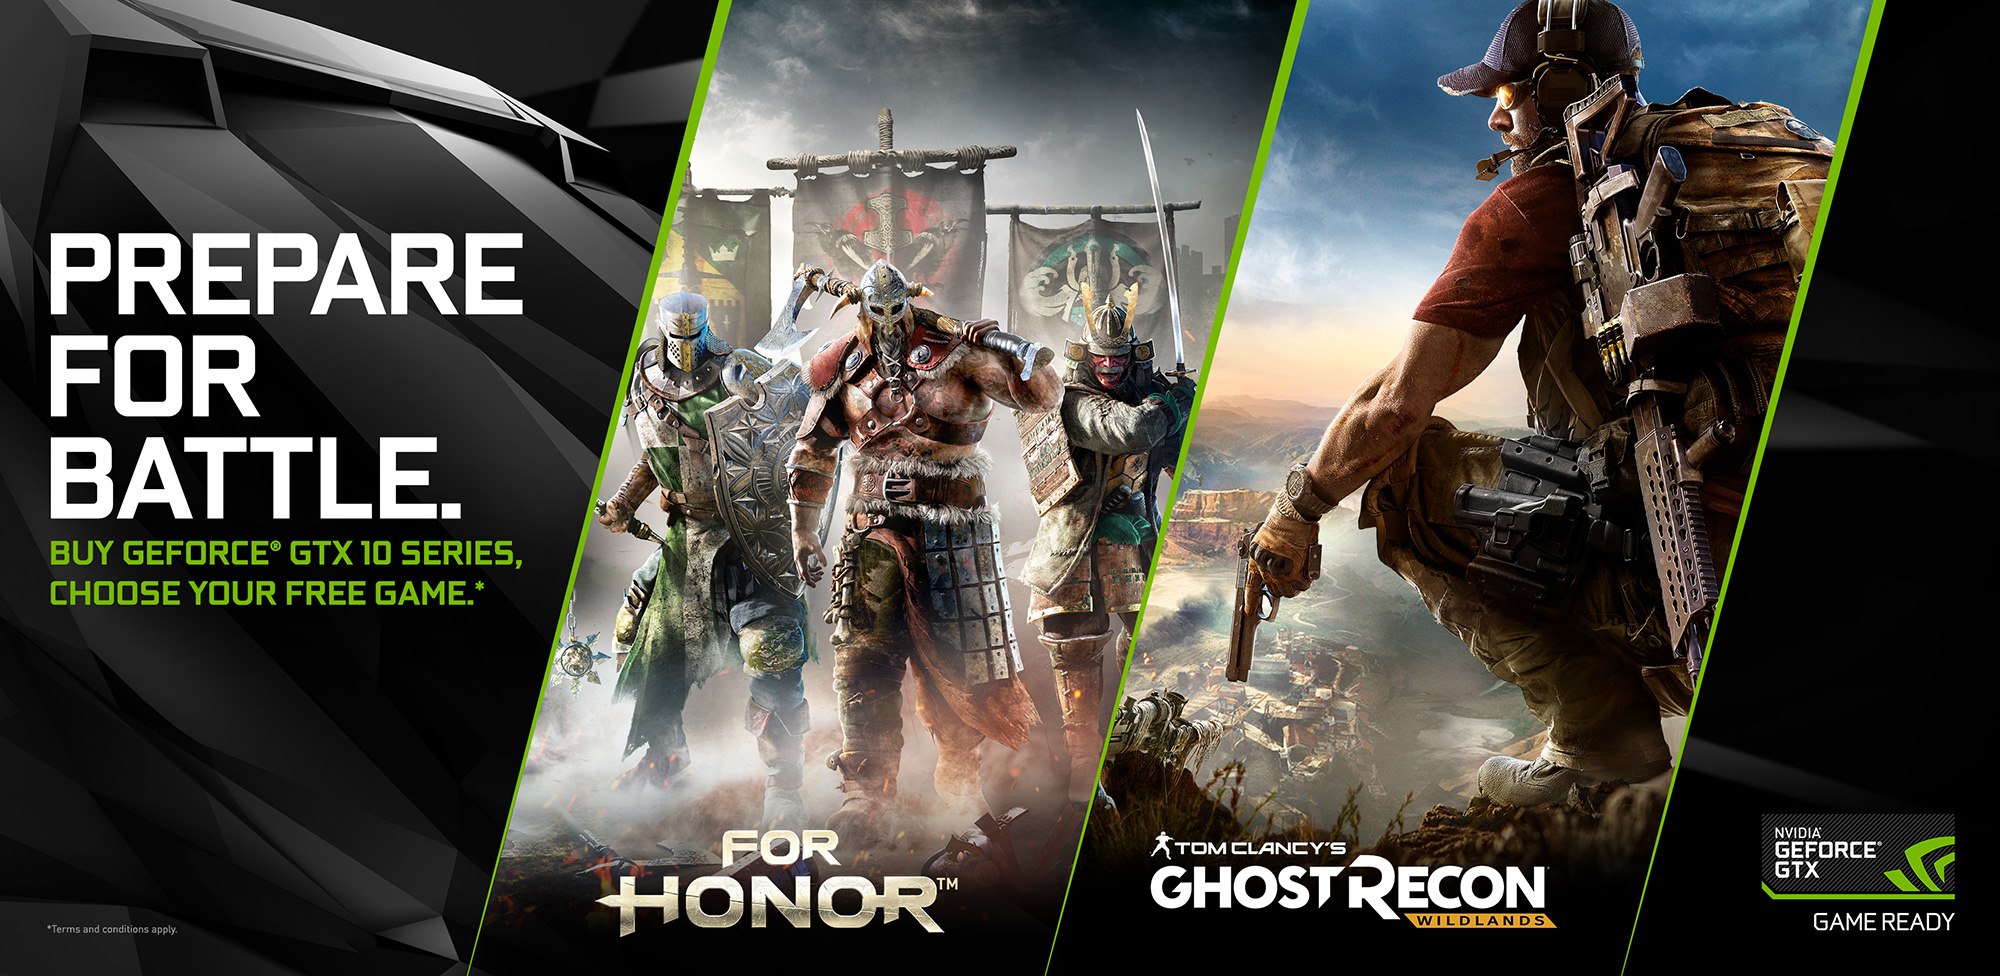 Pubg Wallpaper Dual Monitor Game Bundle Get For Honor Or Ghost Recon Free With